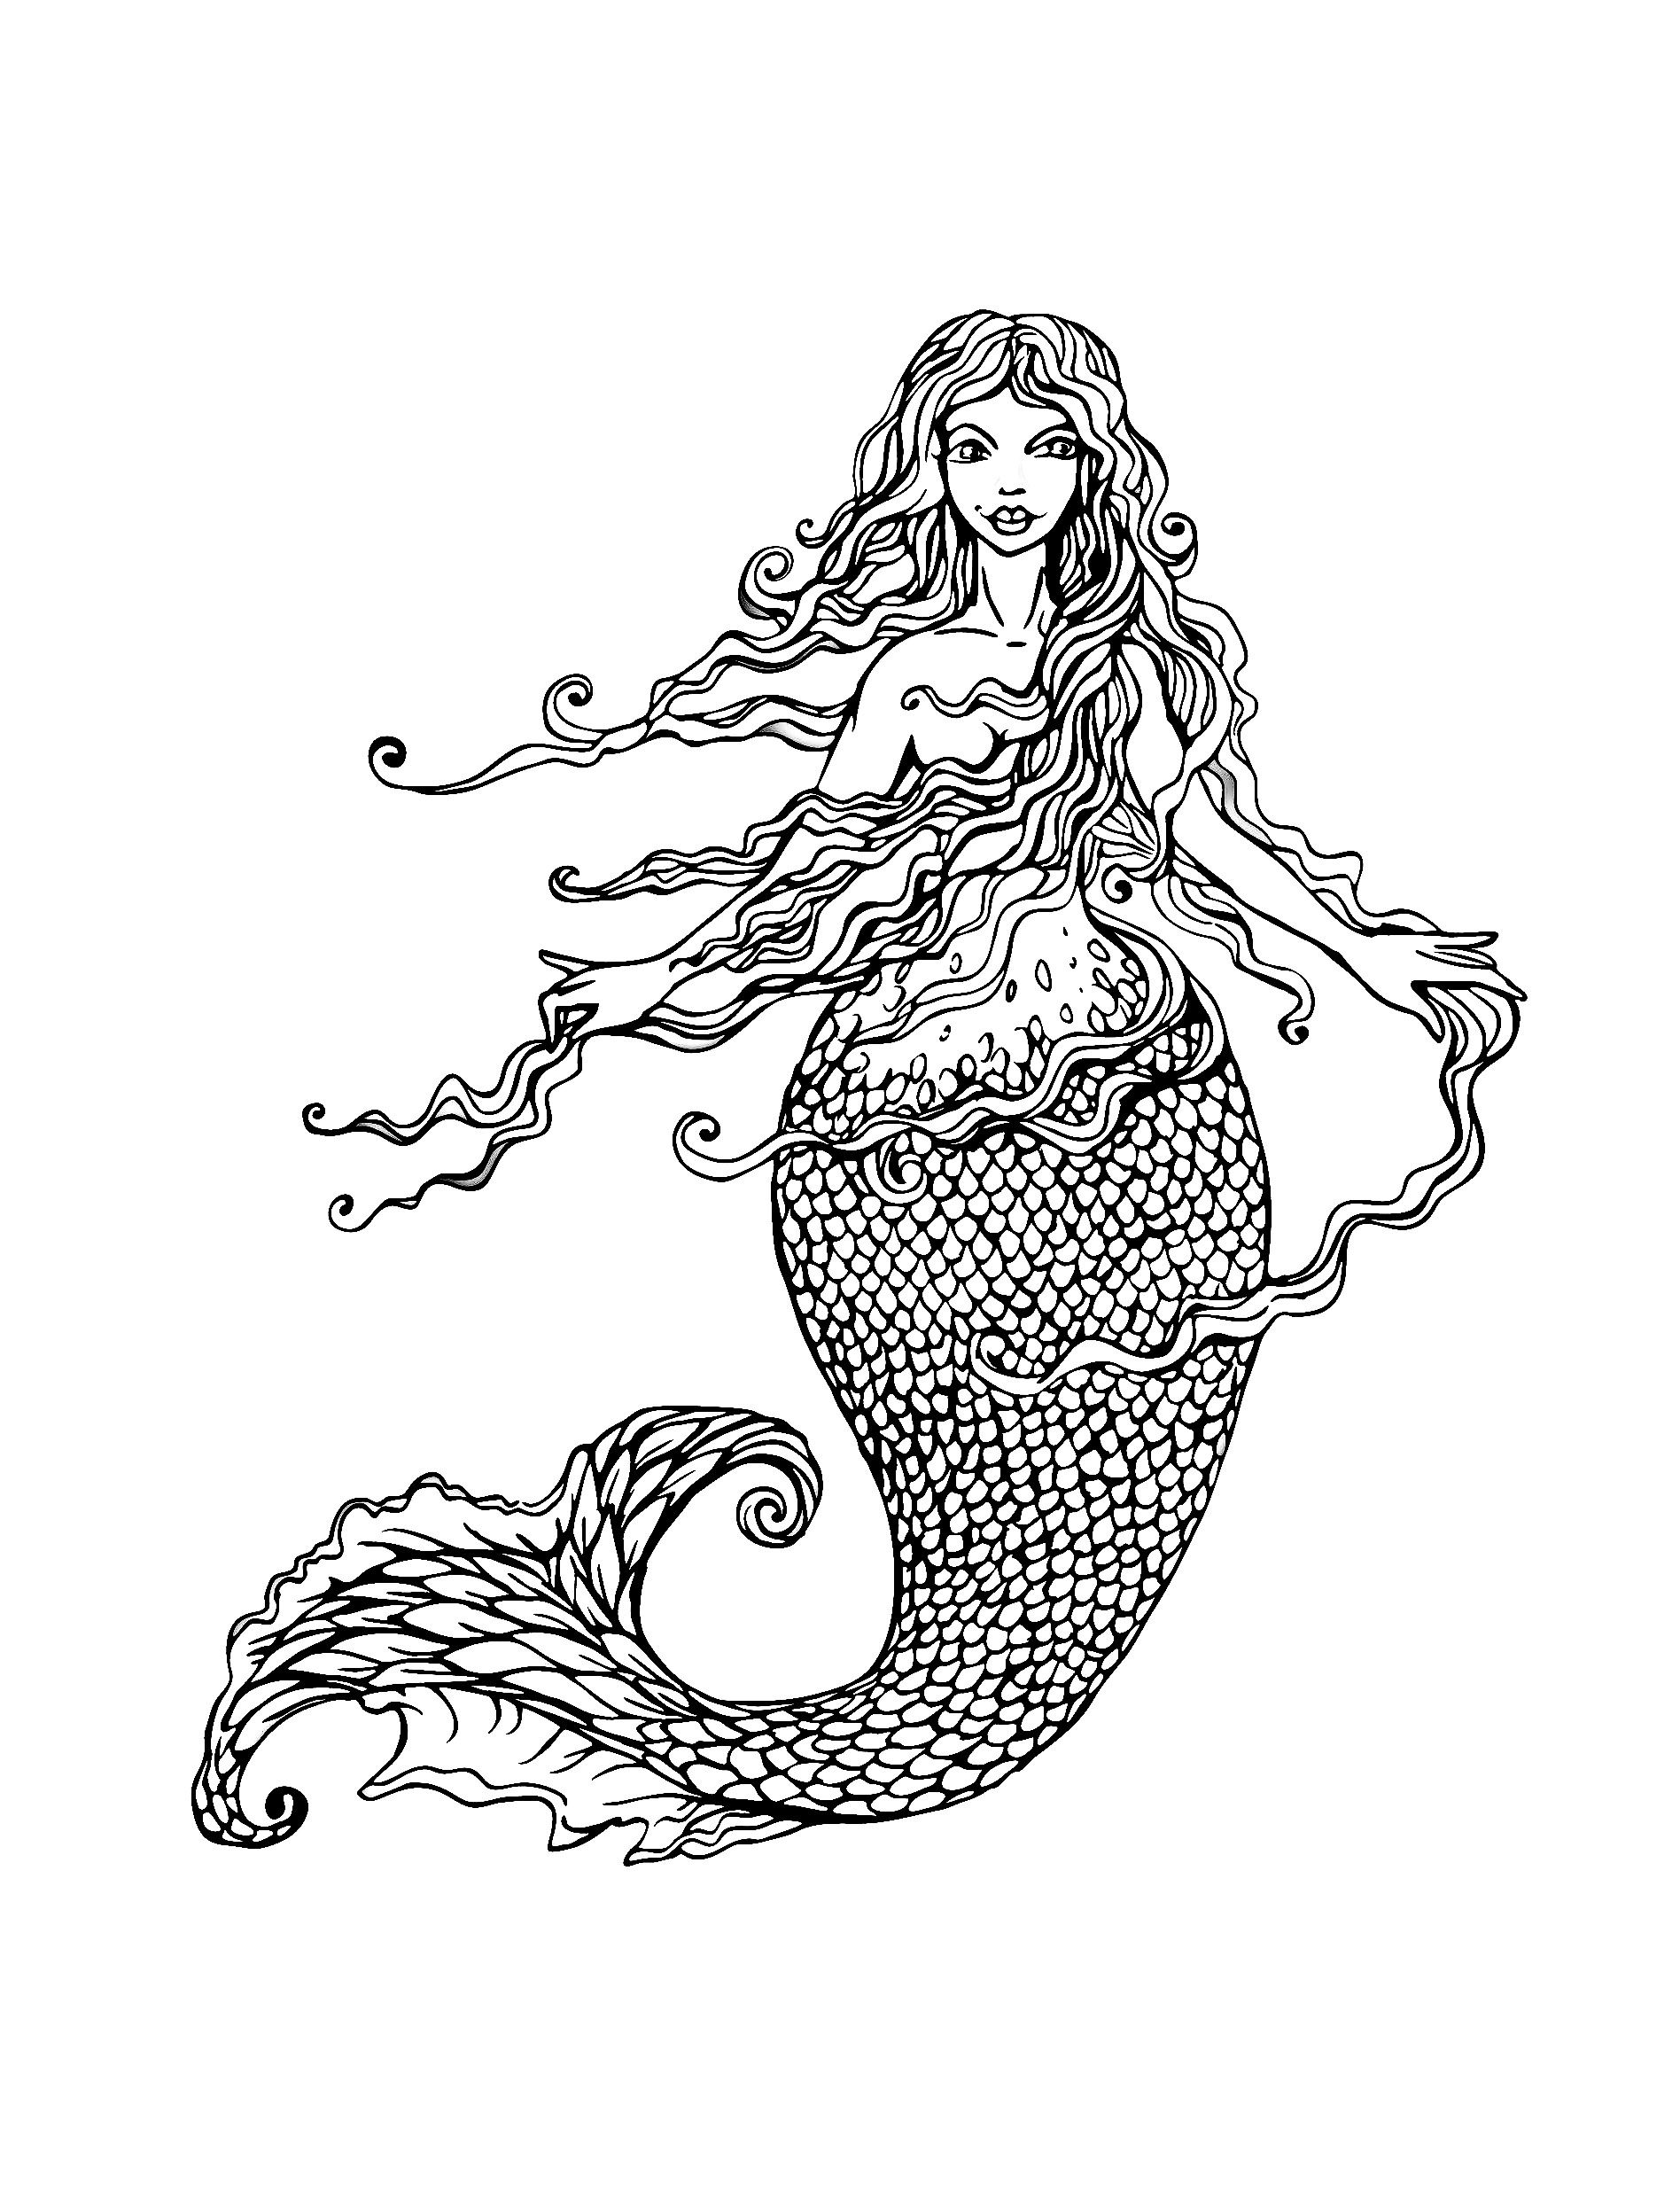 free coloring page coloring-adult-mermaid-with-long-hair-by-lian2011